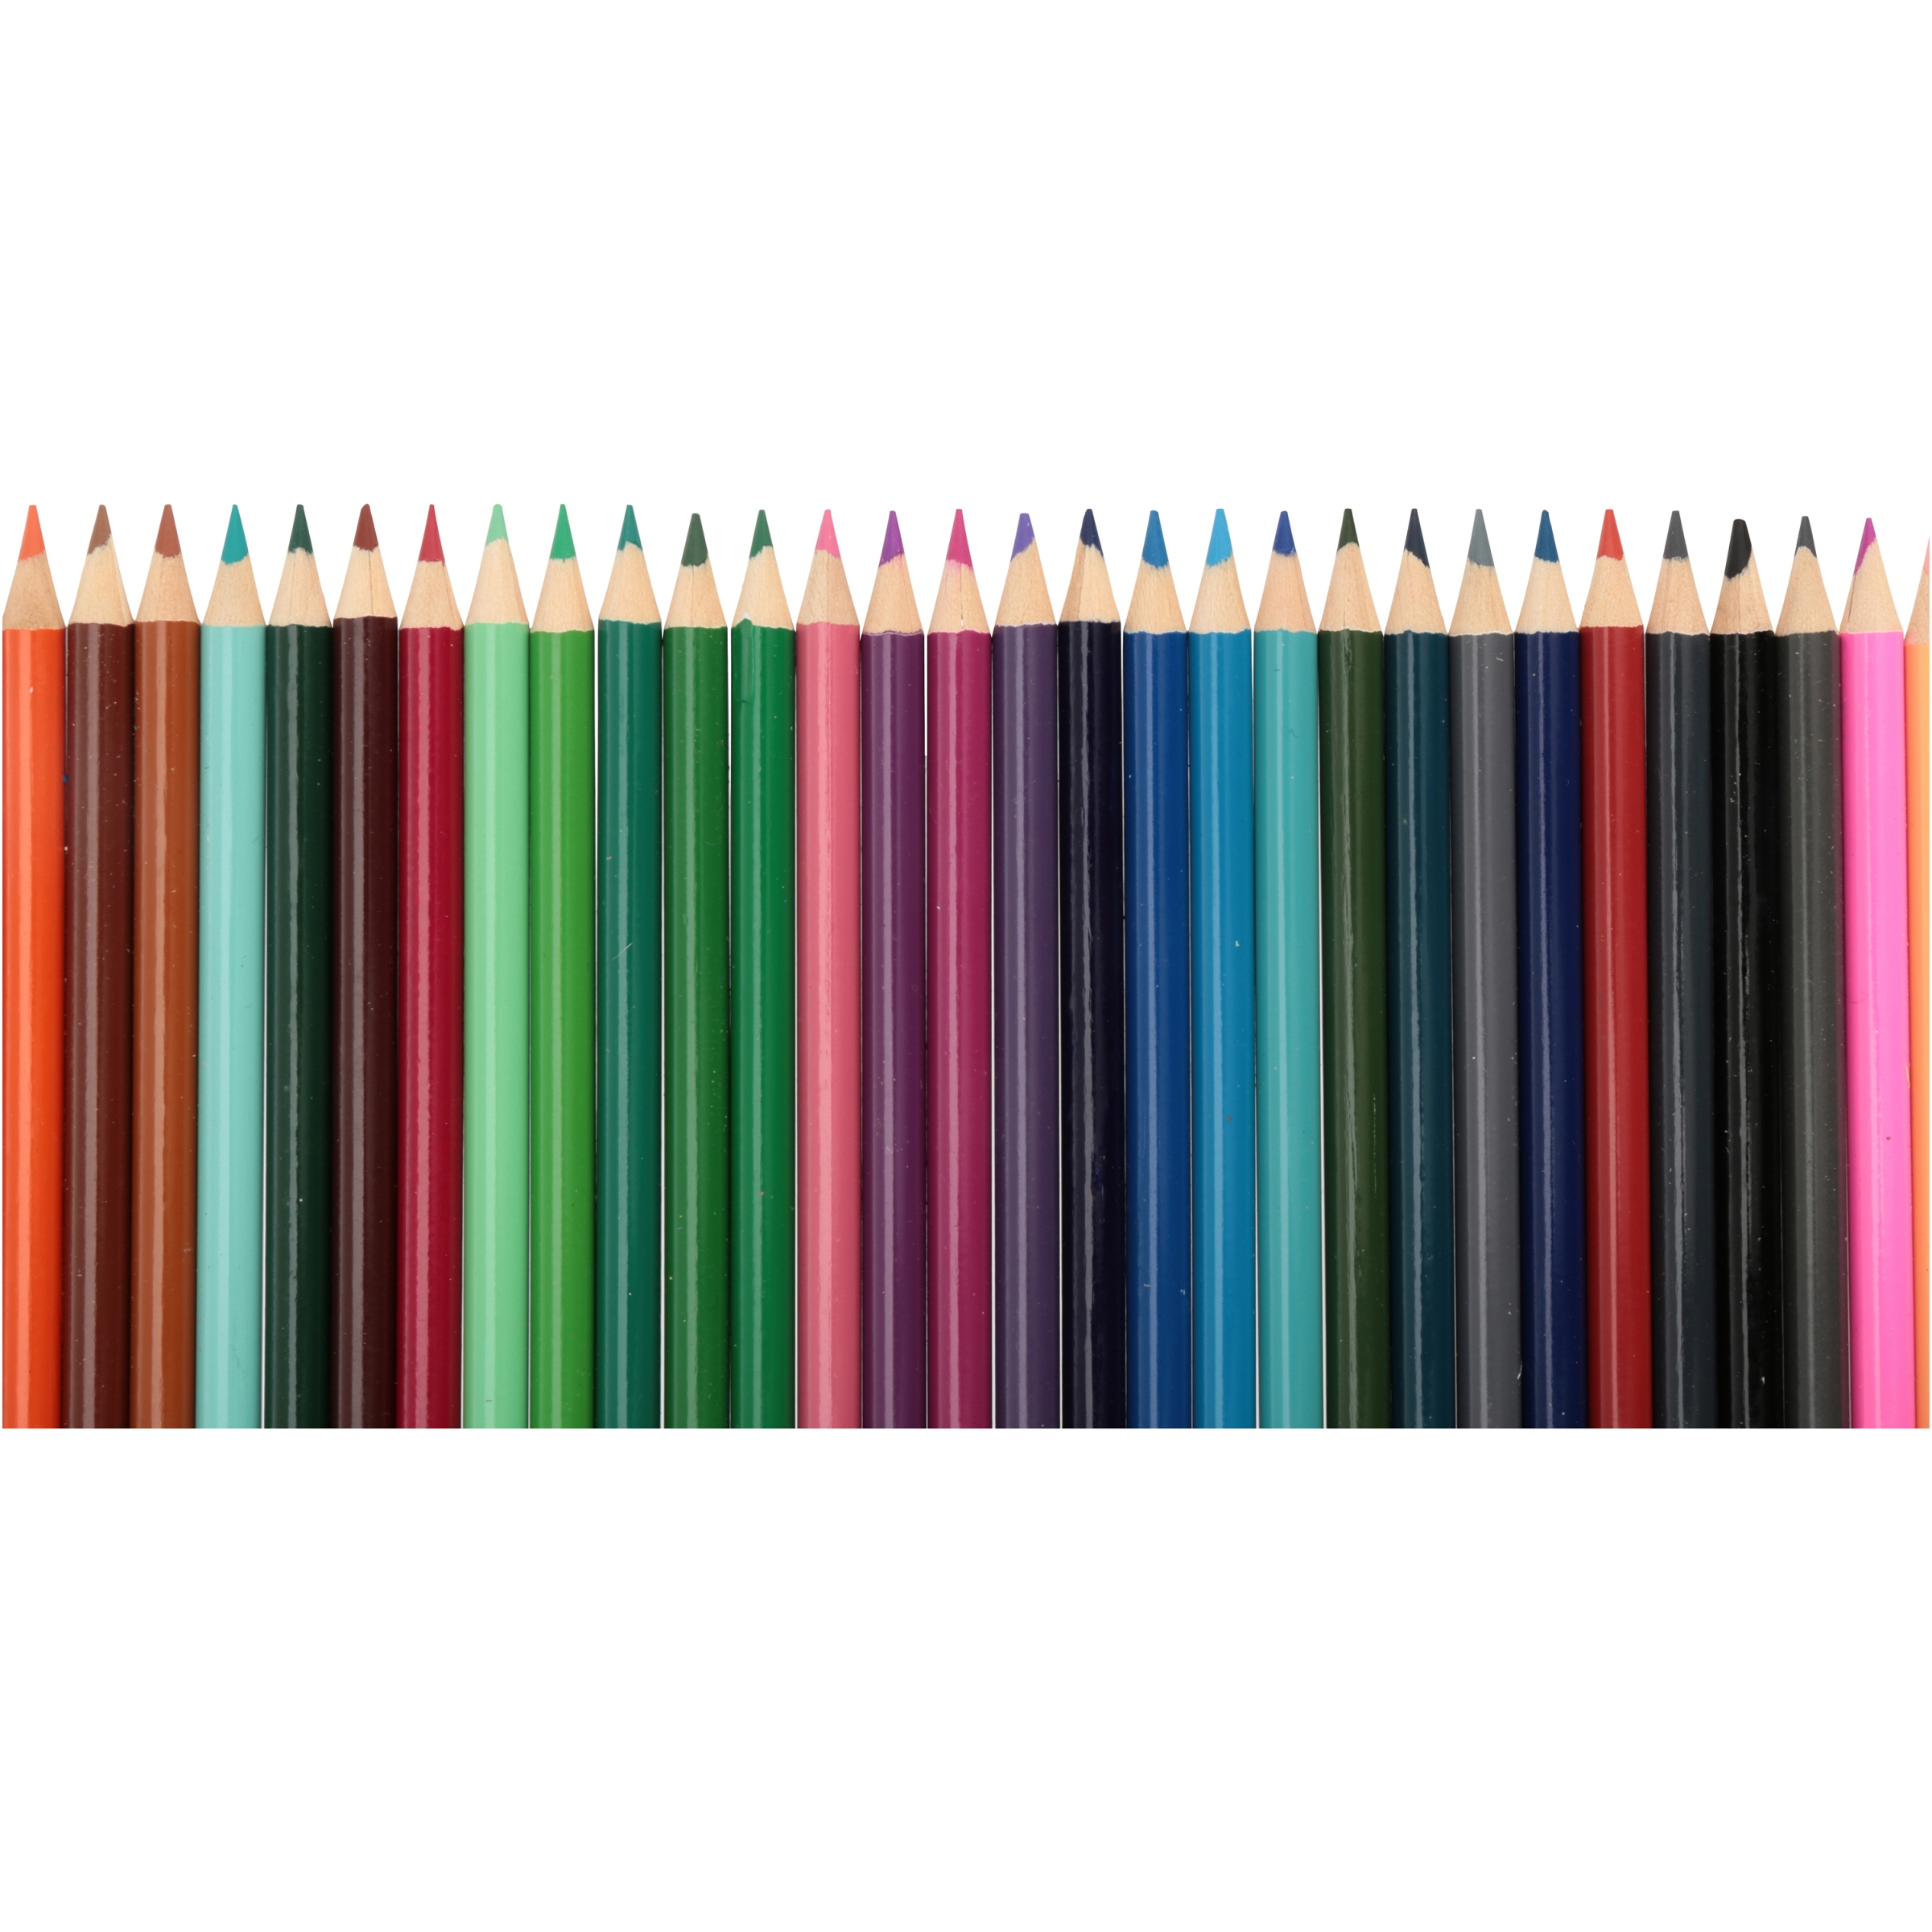 Great for Coloring or Drawing Leisure Arts Heavily pigmented for Even Color 80 Pack Pre-Sharpened Colored Pencils